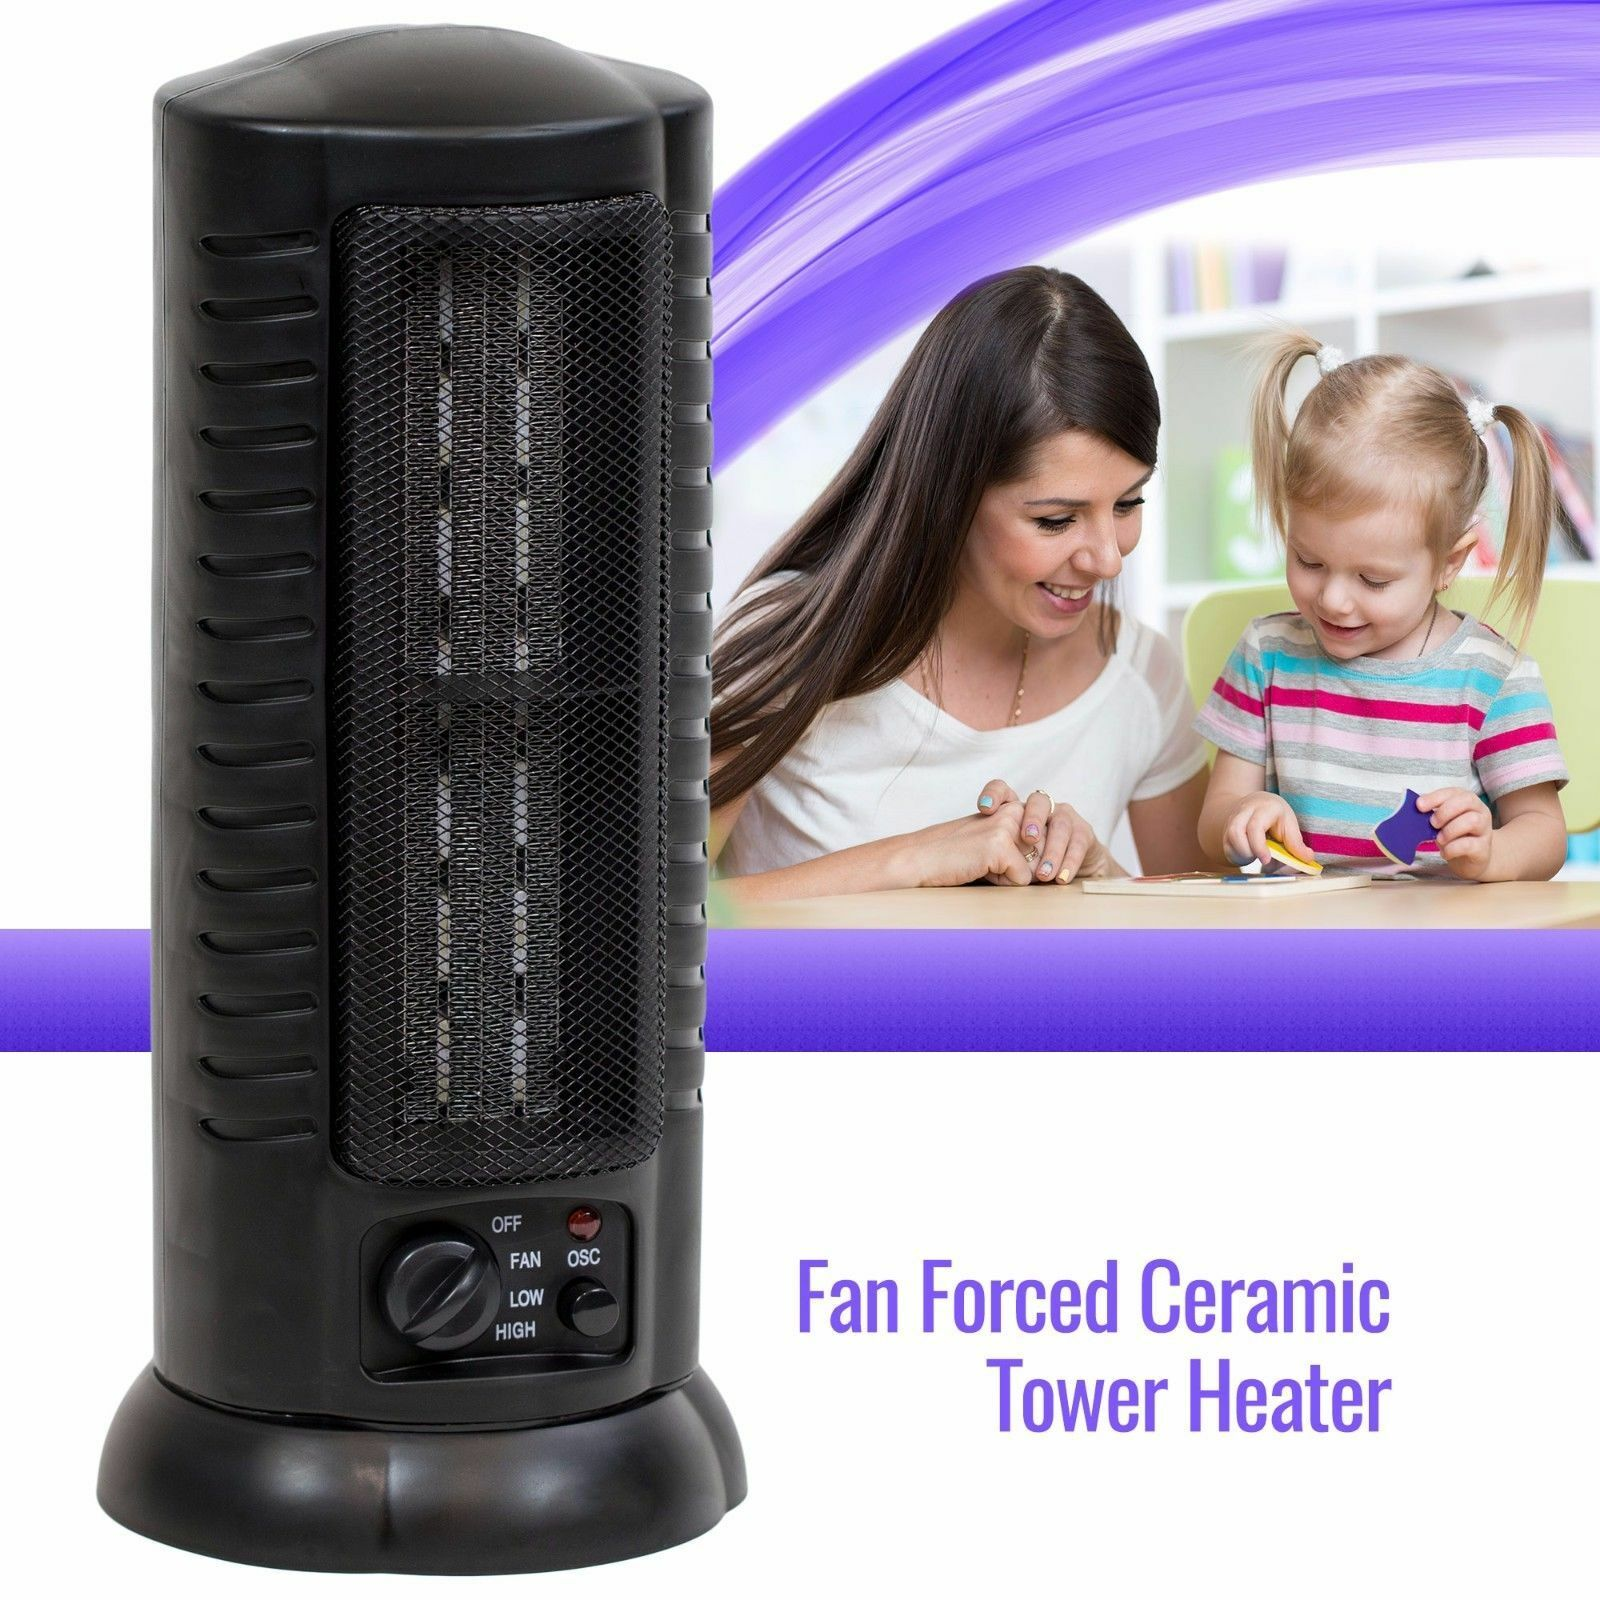 $39.99 - Portable Ceramic Space Heater Tower Electric Oscillating Home Office Room, Black